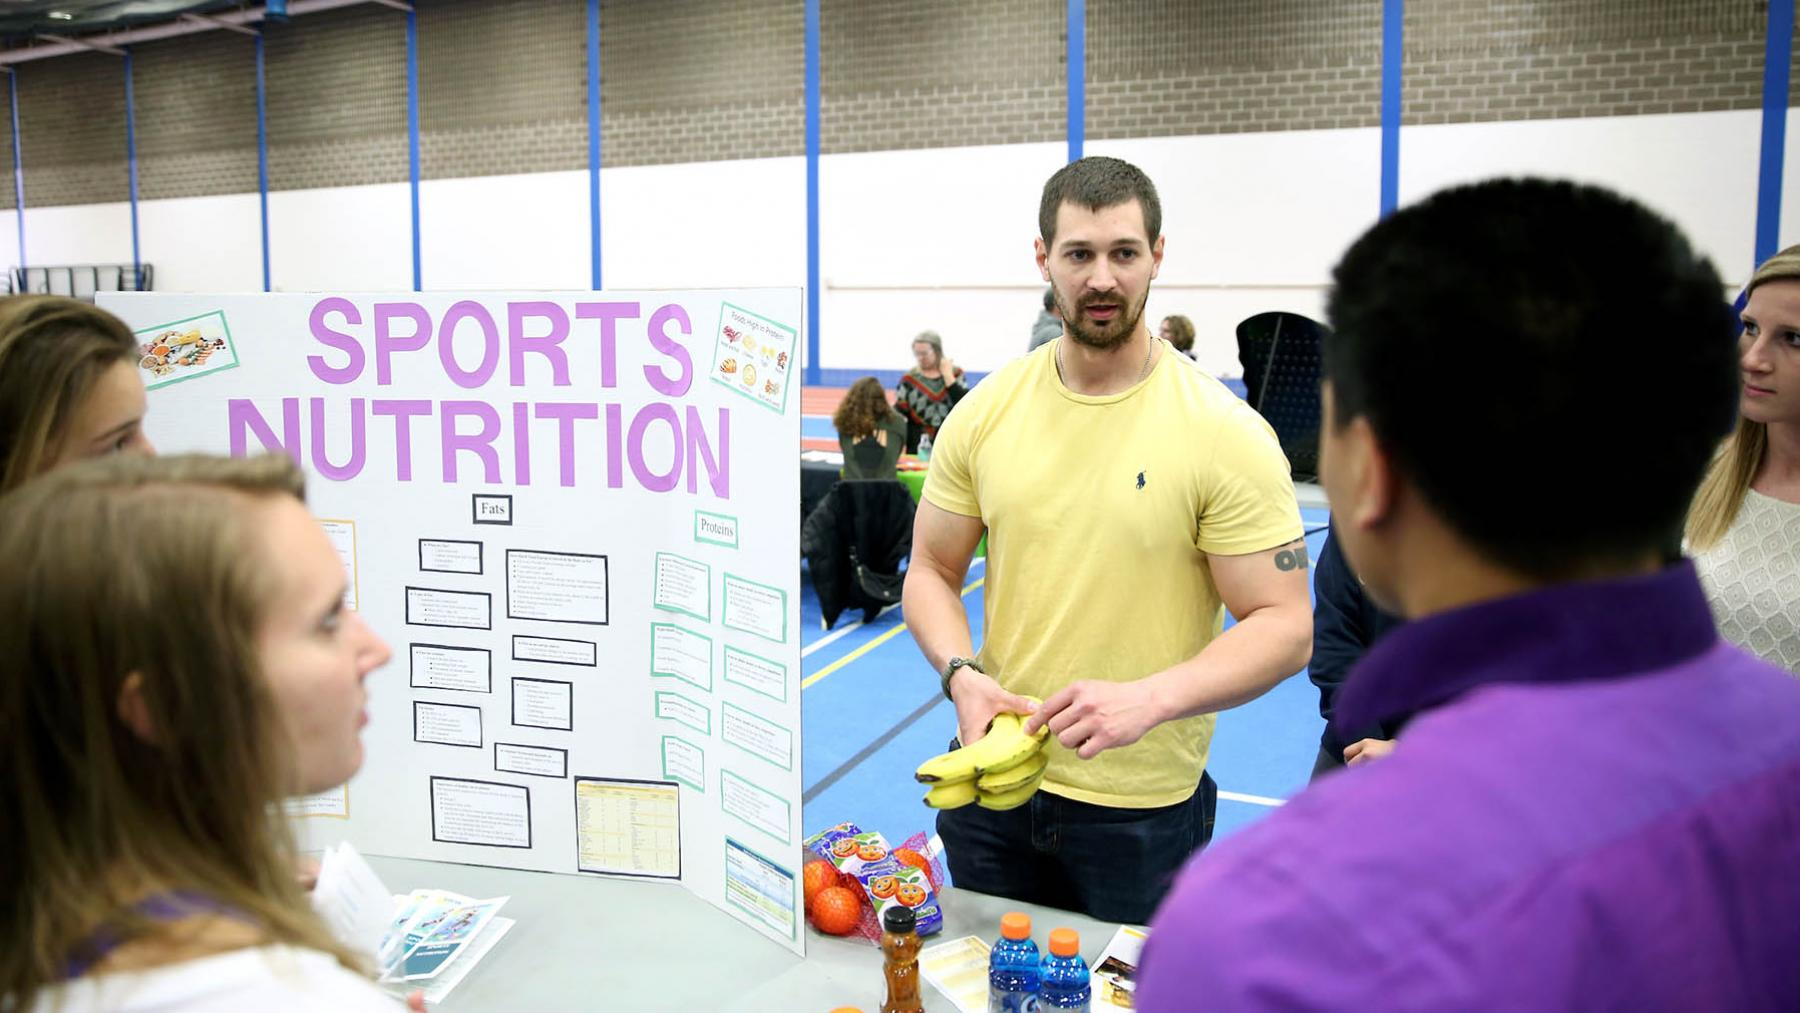 Student presenting sports nutrition